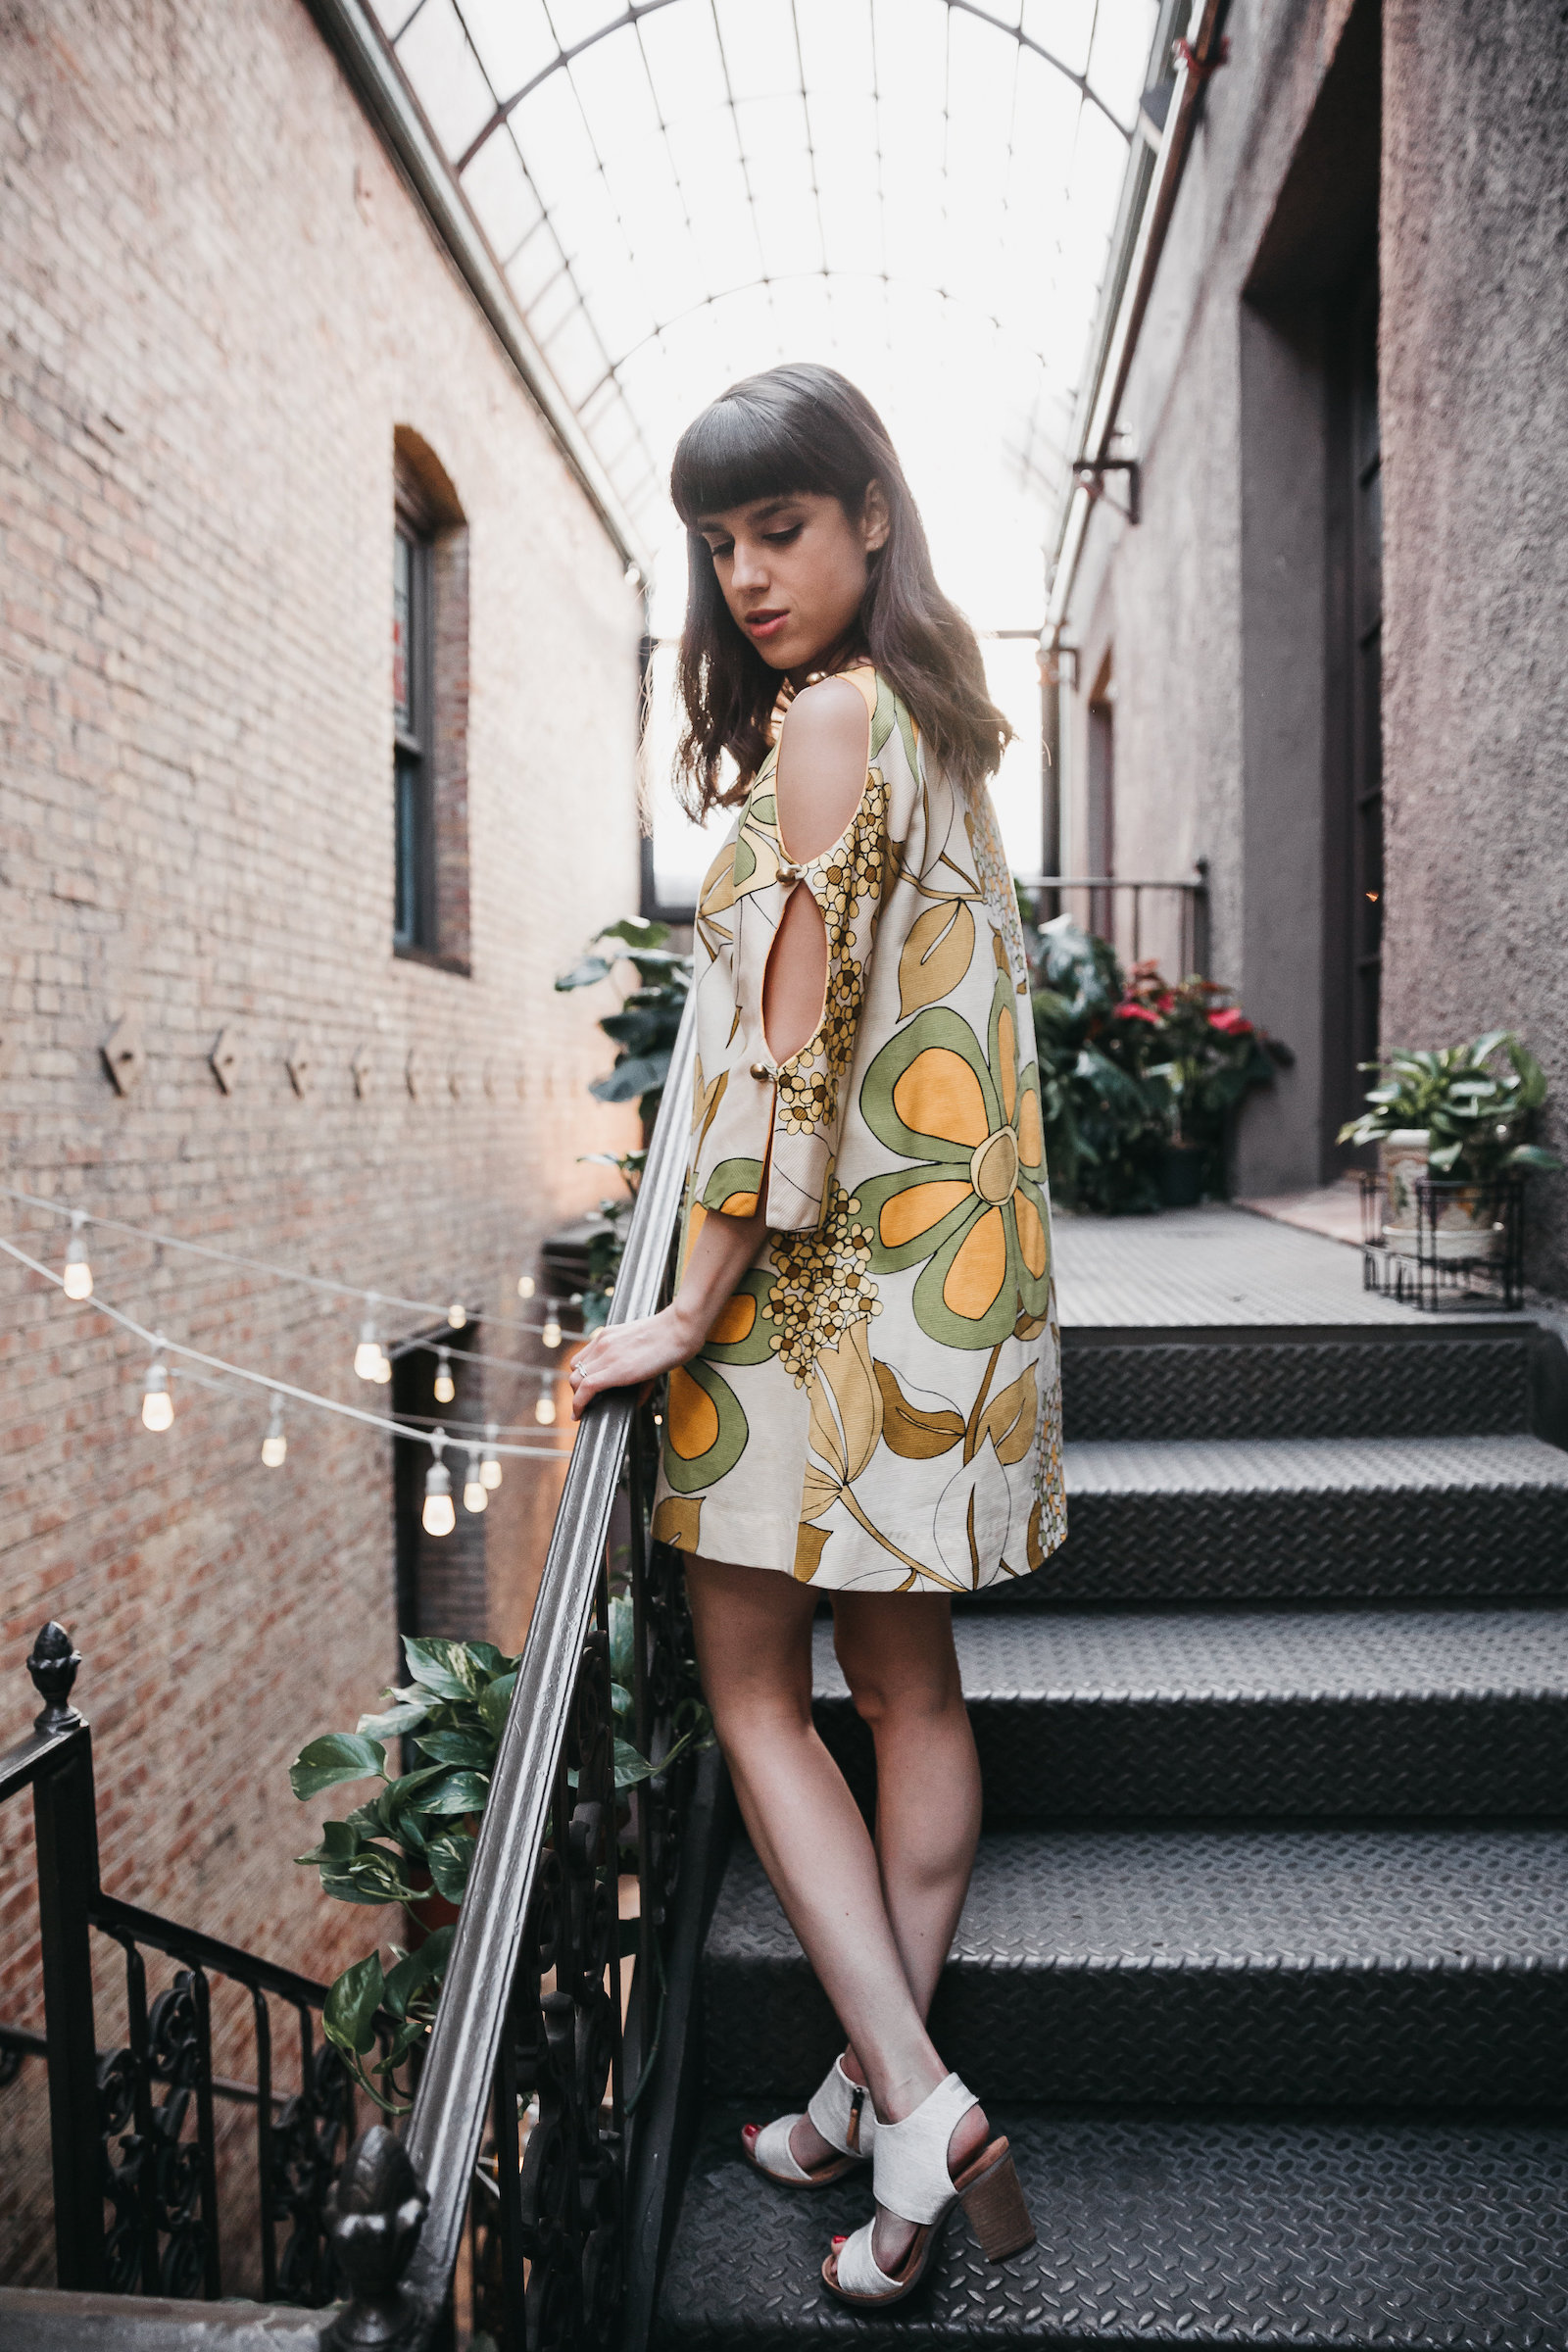 19702 vintage flower dress // A Week Of Bright & Bold Ethical Outfits With Michelle Chavez From Michelle For Good on The Good Trade